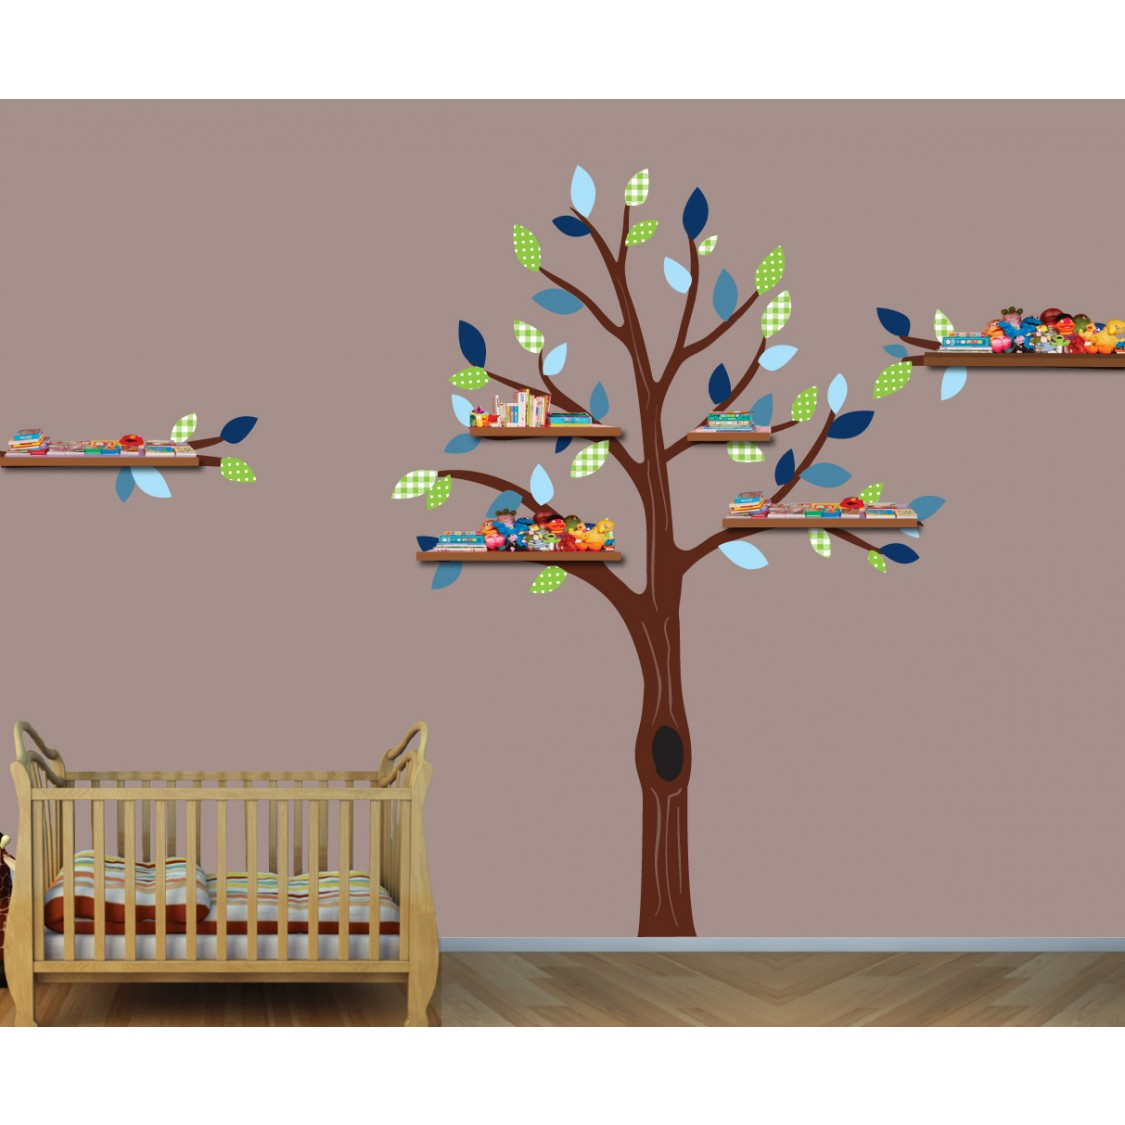 Charming Green And Blue Shelving Nursery Wall Decals Tree For Kids Rooms